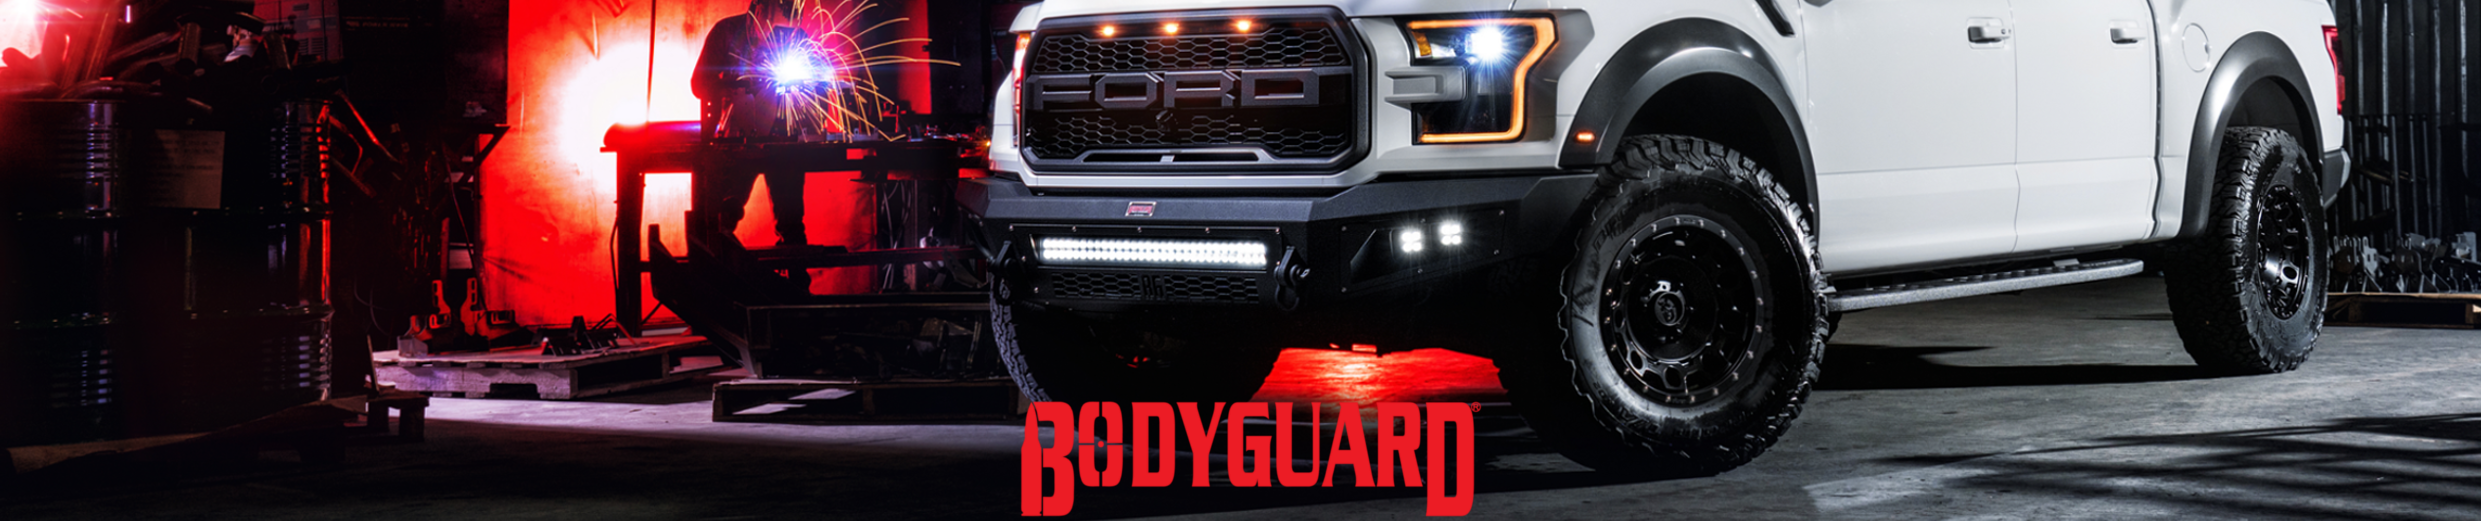 bodyguard-bumpers-careers-and-jobs-3.png